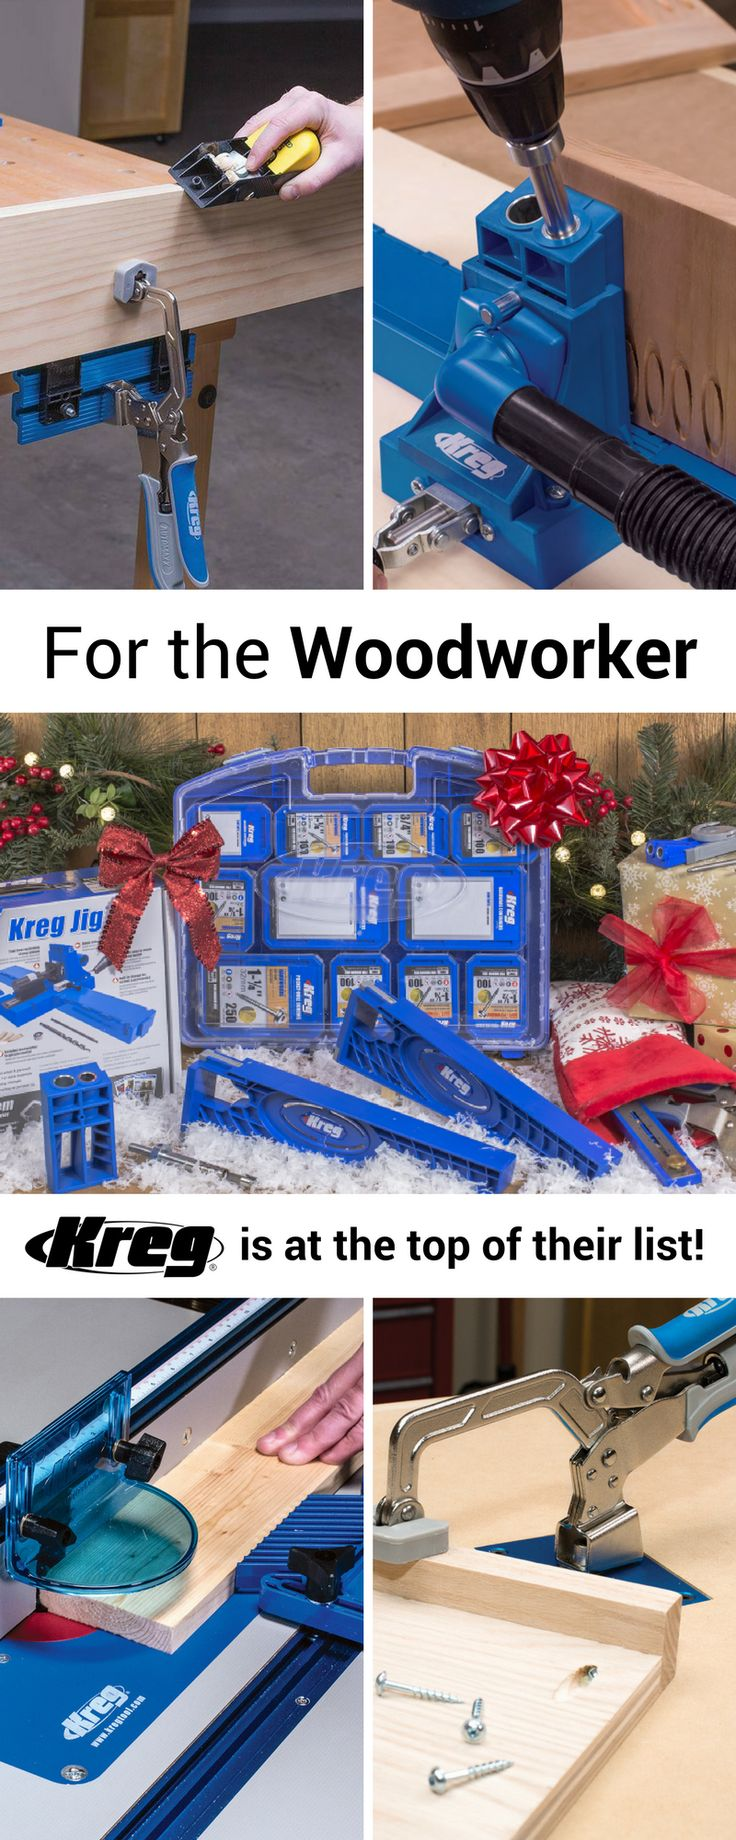 Shop our top gift picks for the Woodworkers on your list.